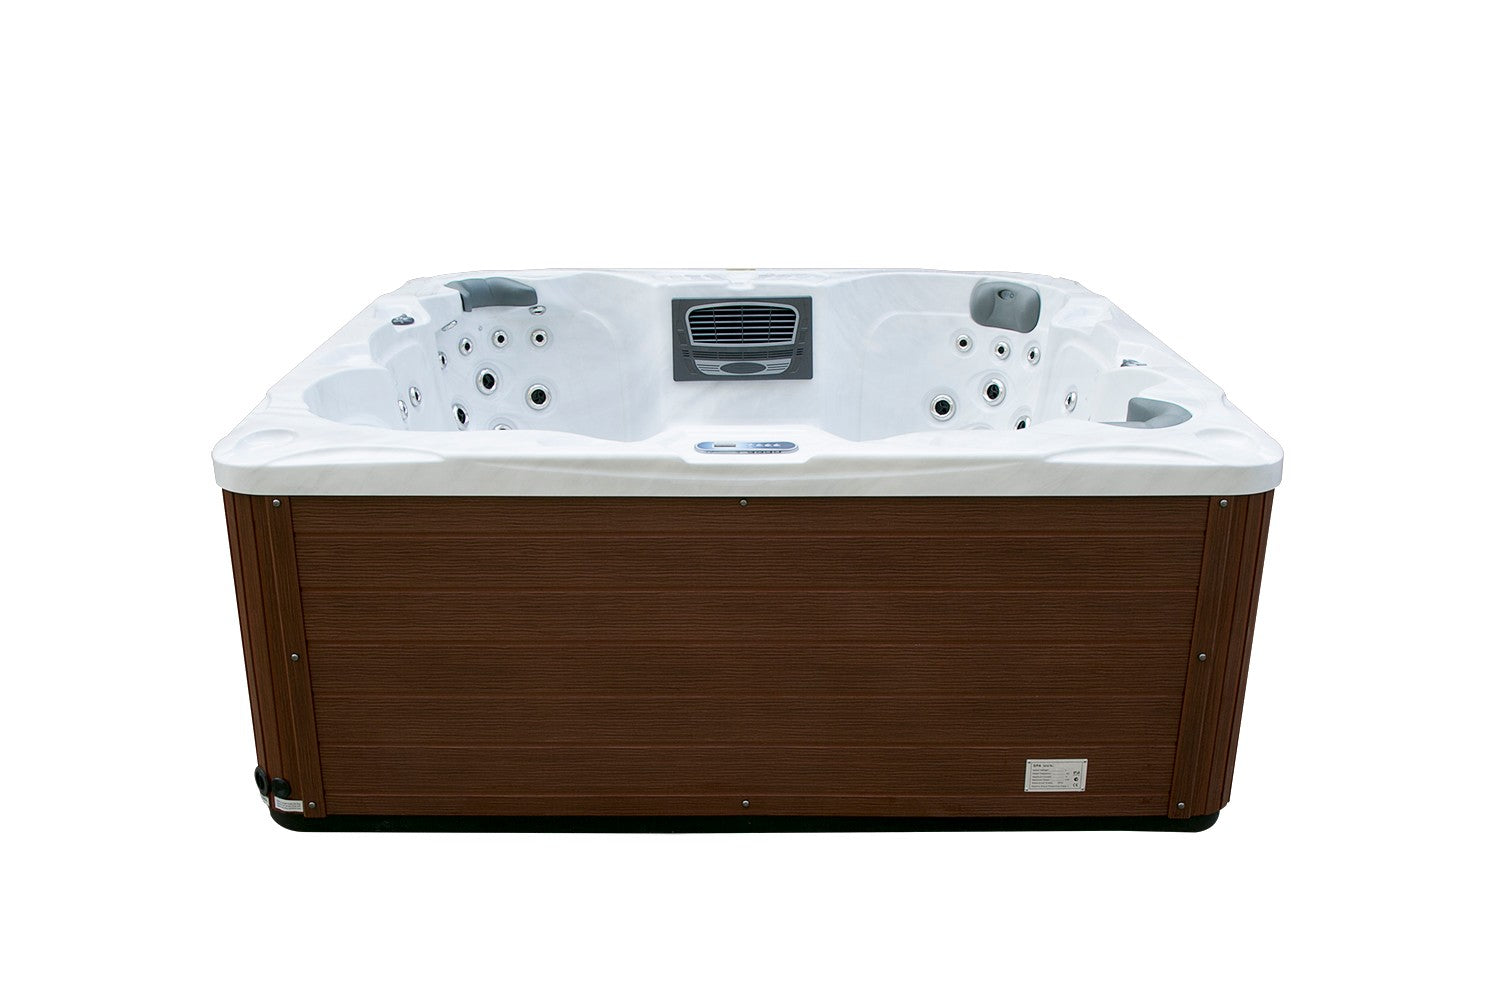 Niagra Hot Tub Spa - 8 Person, 73 Jets